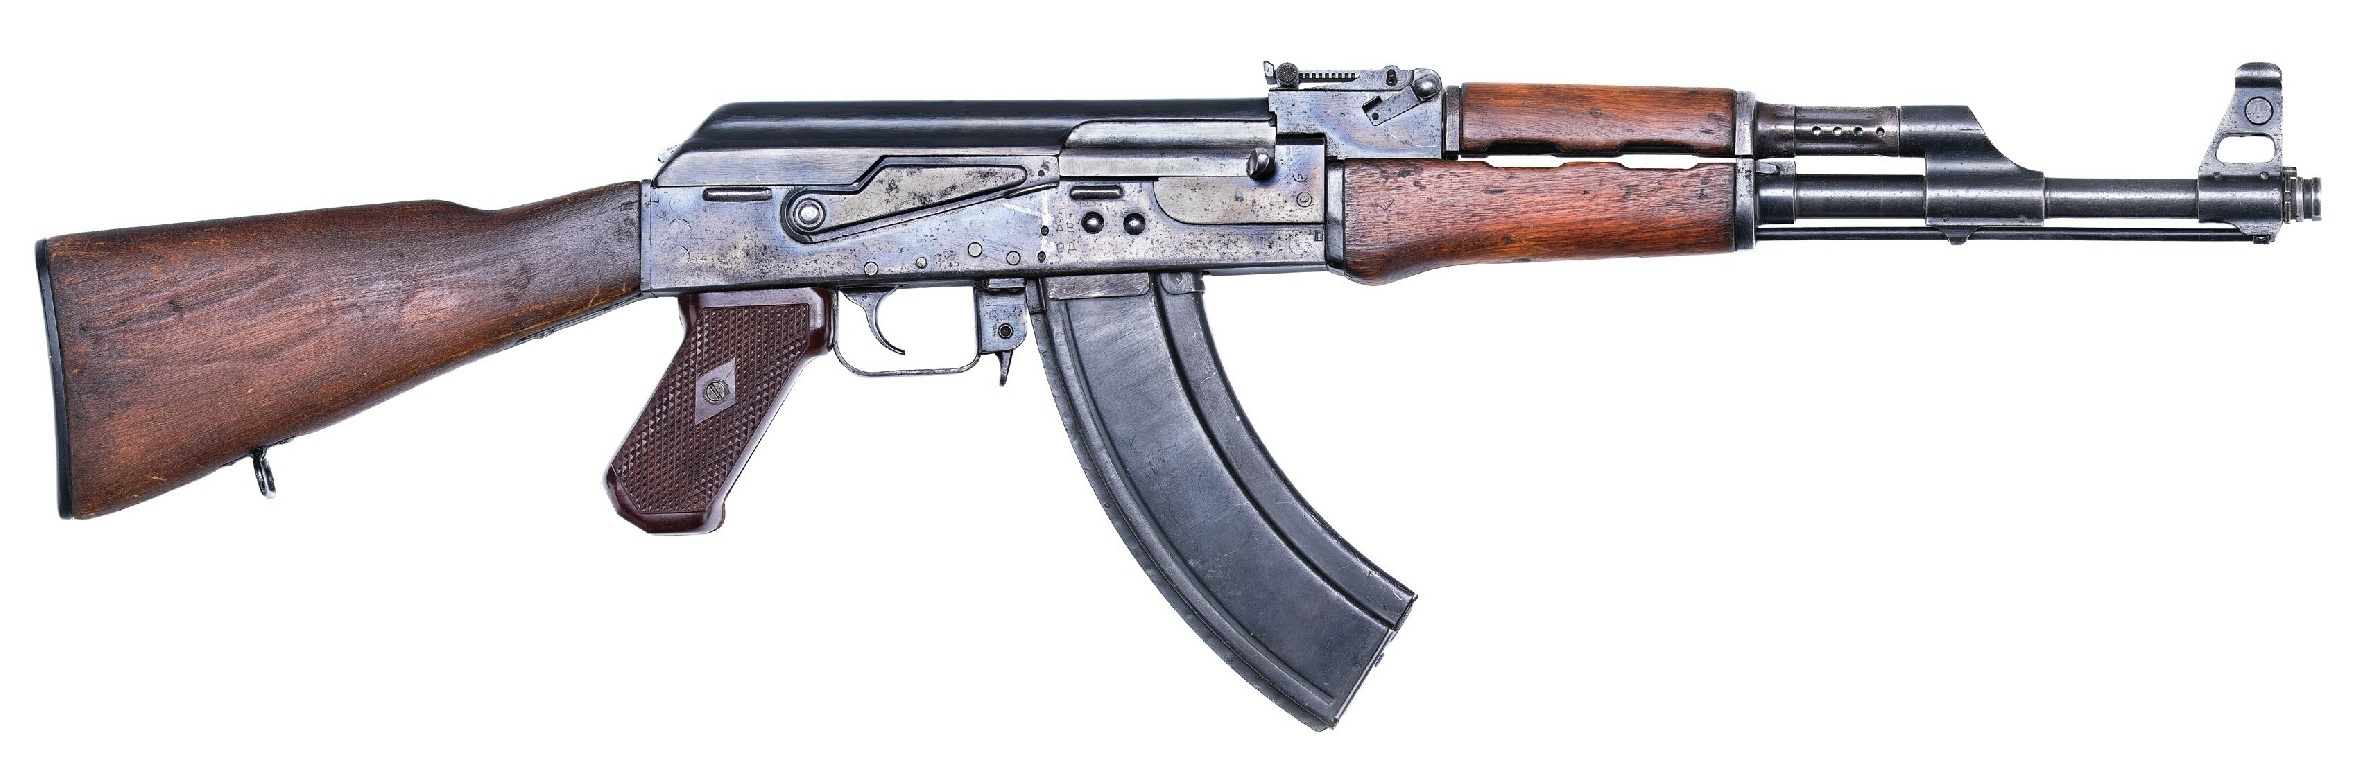 http://www.imfdb.org/images/a/a0/AK-47.jpg